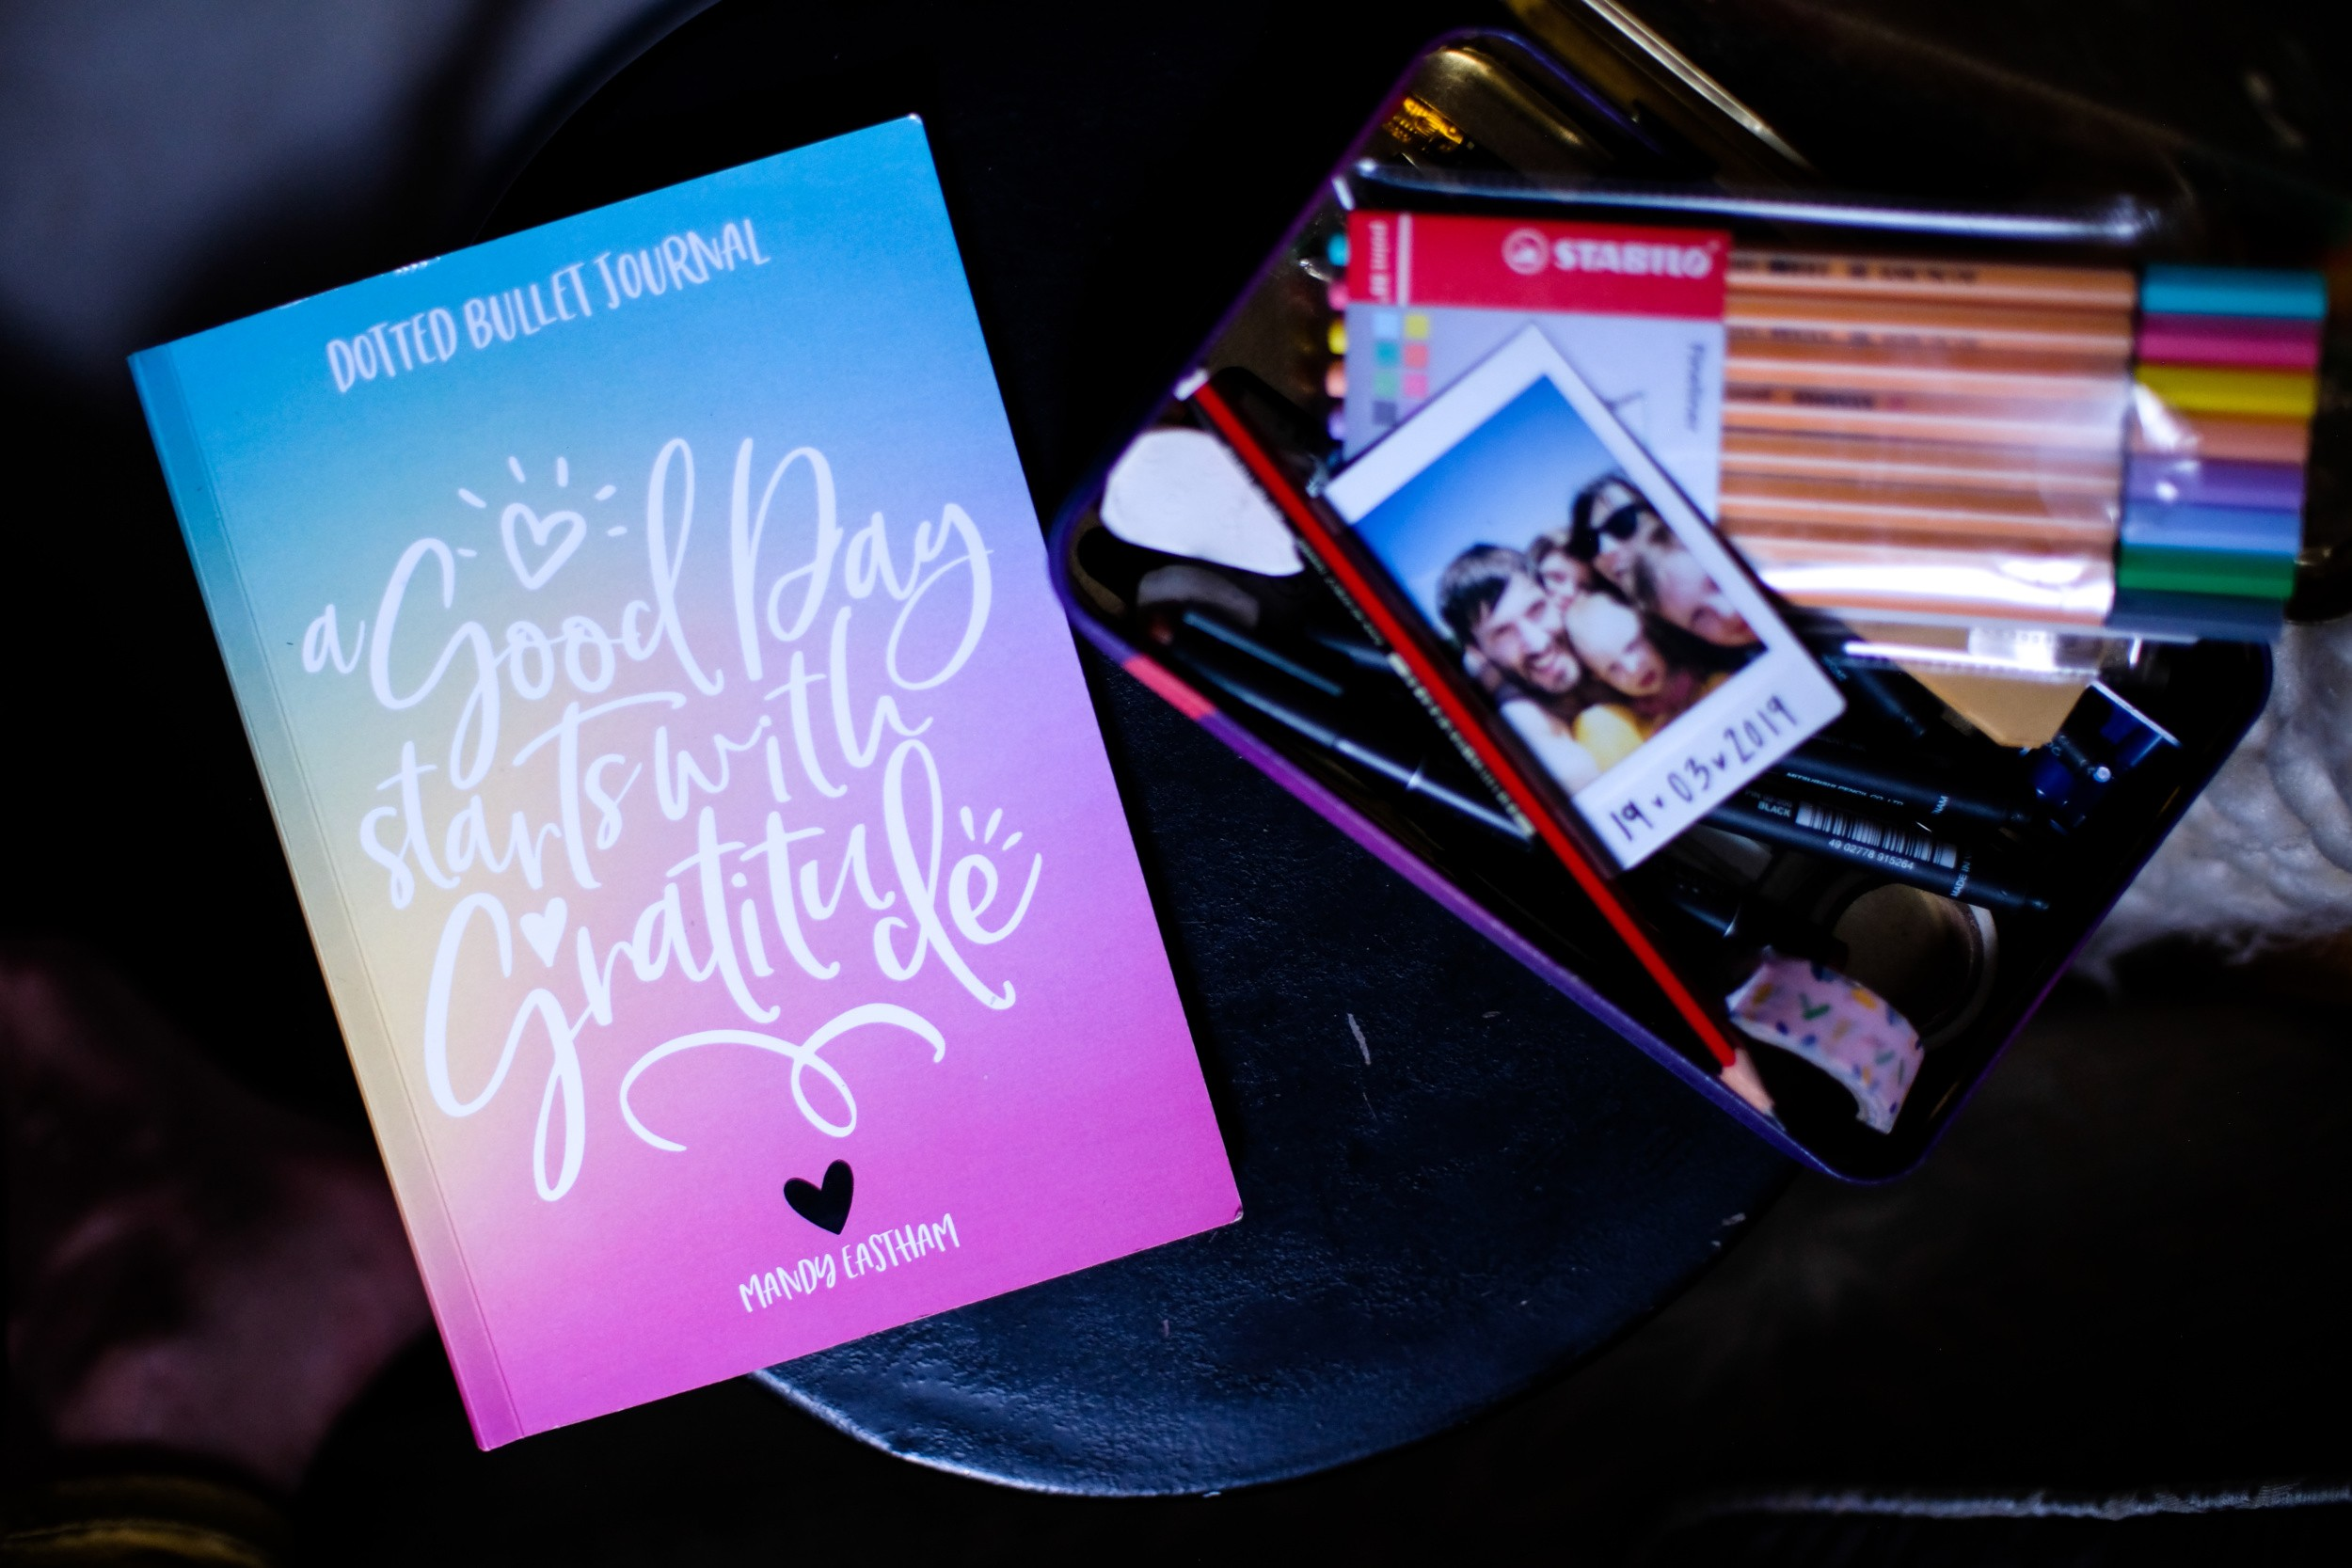 Keeping-a-gratitude-journal